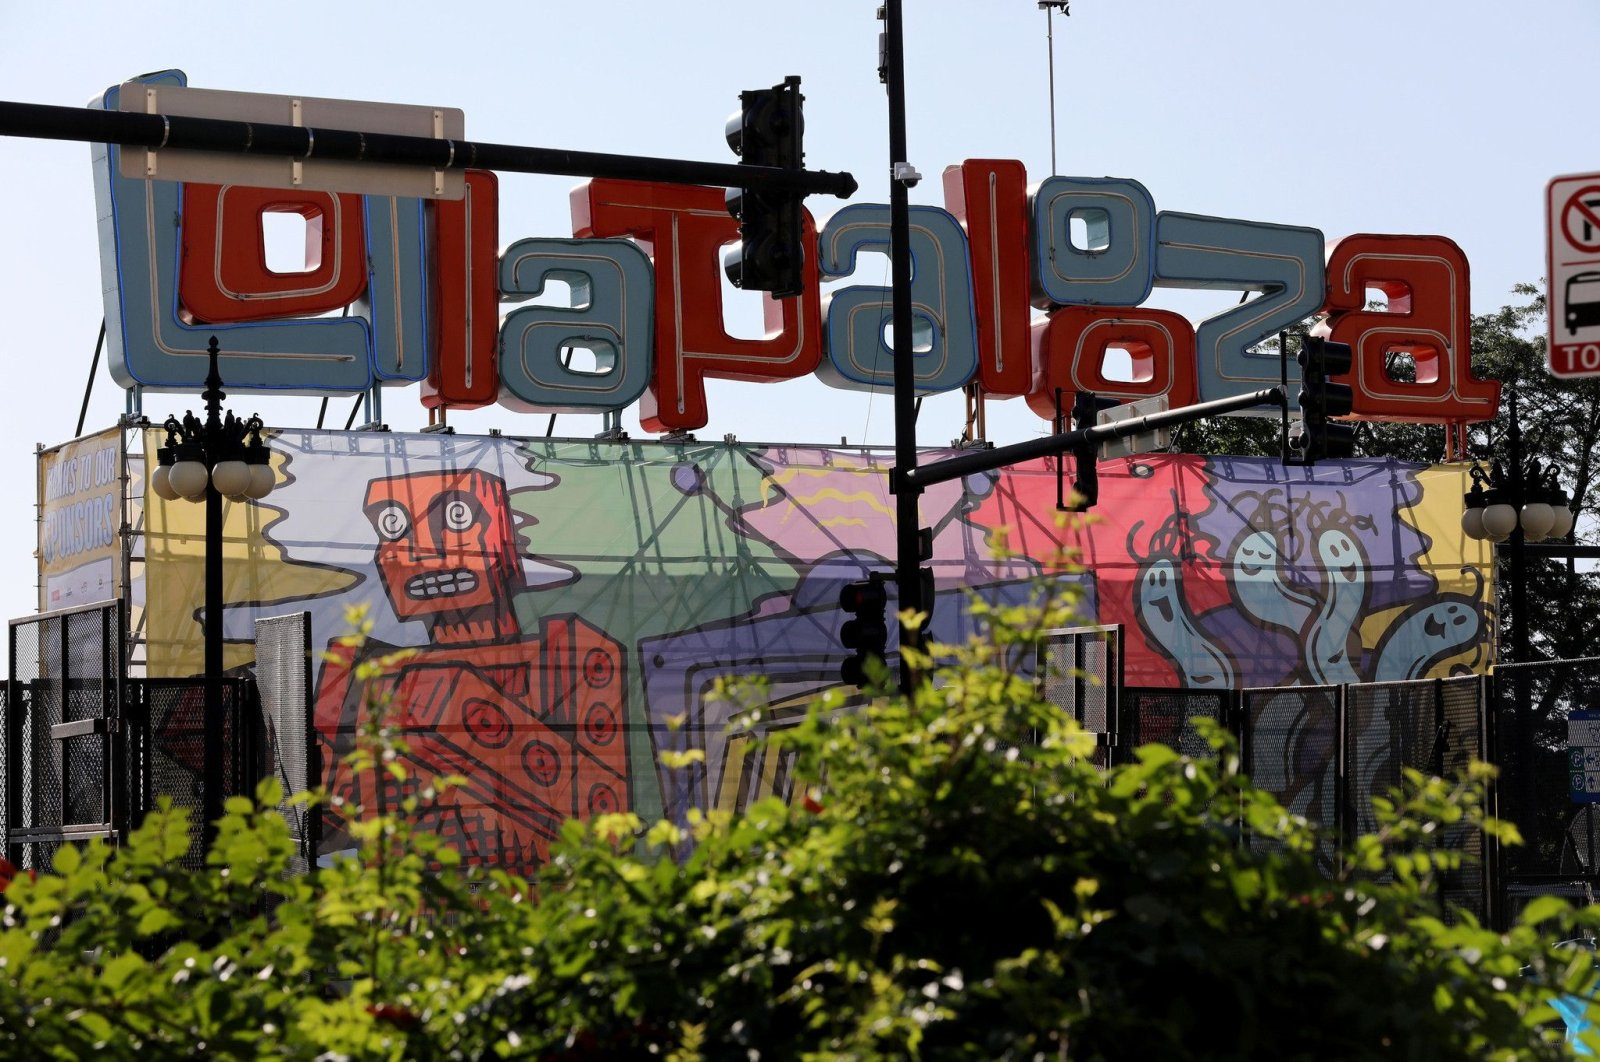 """A """"Lollapalooza"""" sign and banner on the Lollapalooza grounds in Grant Park, Chicago, the U.S.  (DPA Photo)"""